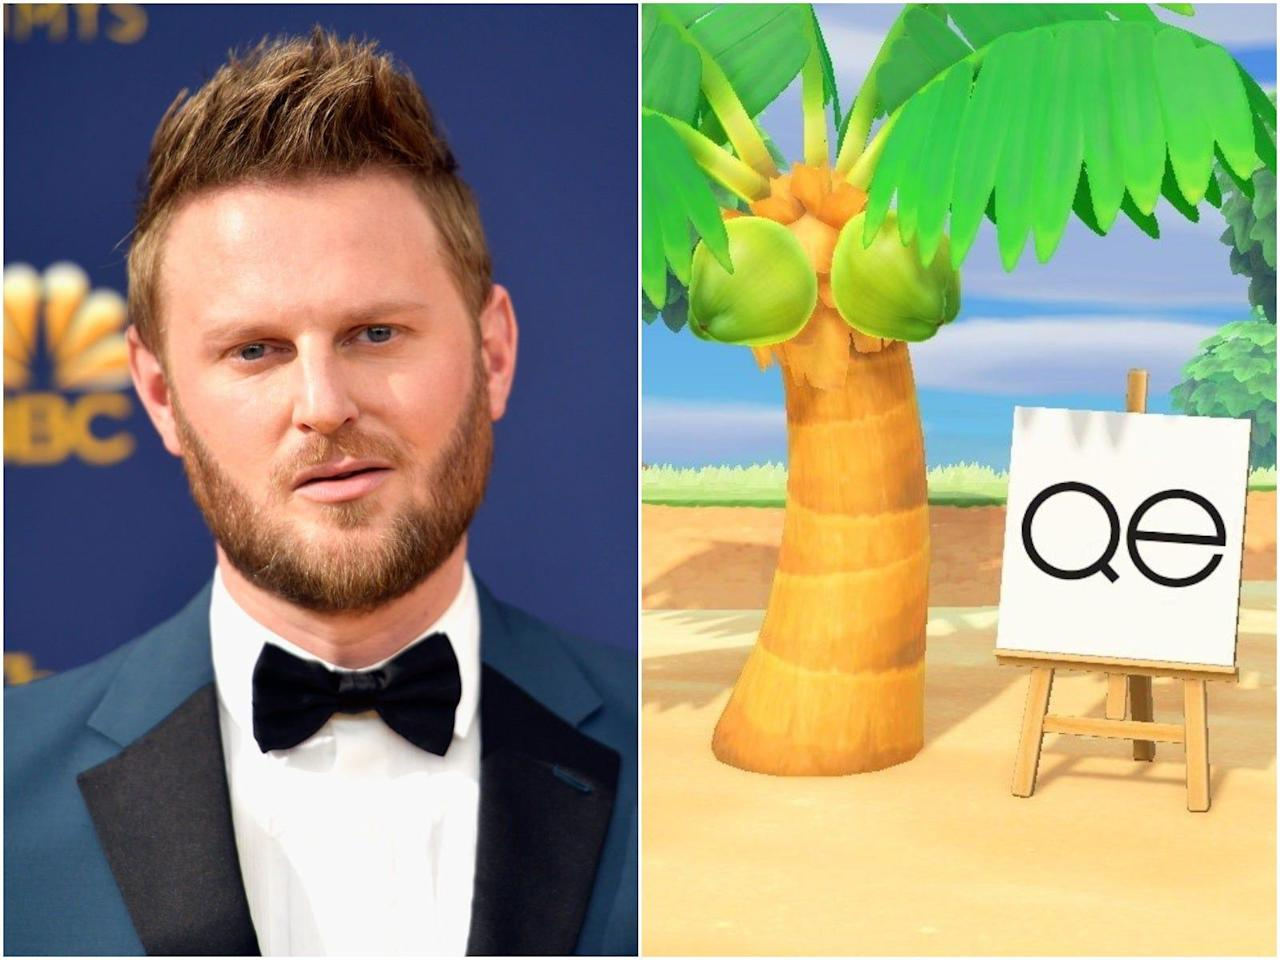 'Queer Eye's' Bobby Berk helped fans redesign their 'Animal Crossing' homes, and the results show why he's the interior design expert